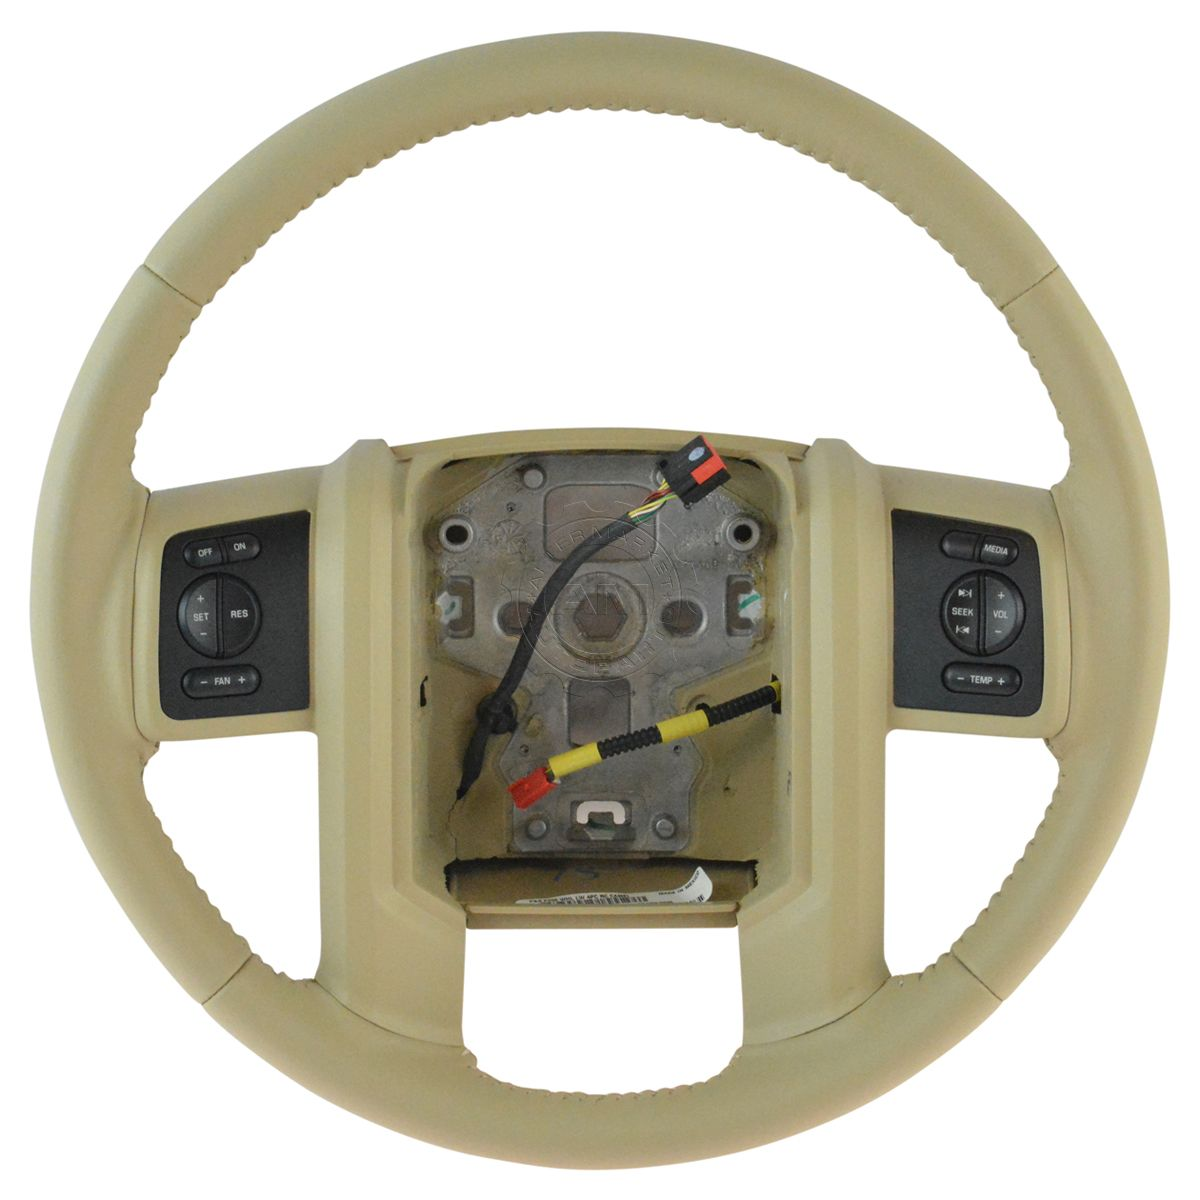 Oem Leather Steering Wheel W Radio Cruise Control Buttons For 1955 Ford F100 Truck Wheels Super Duty